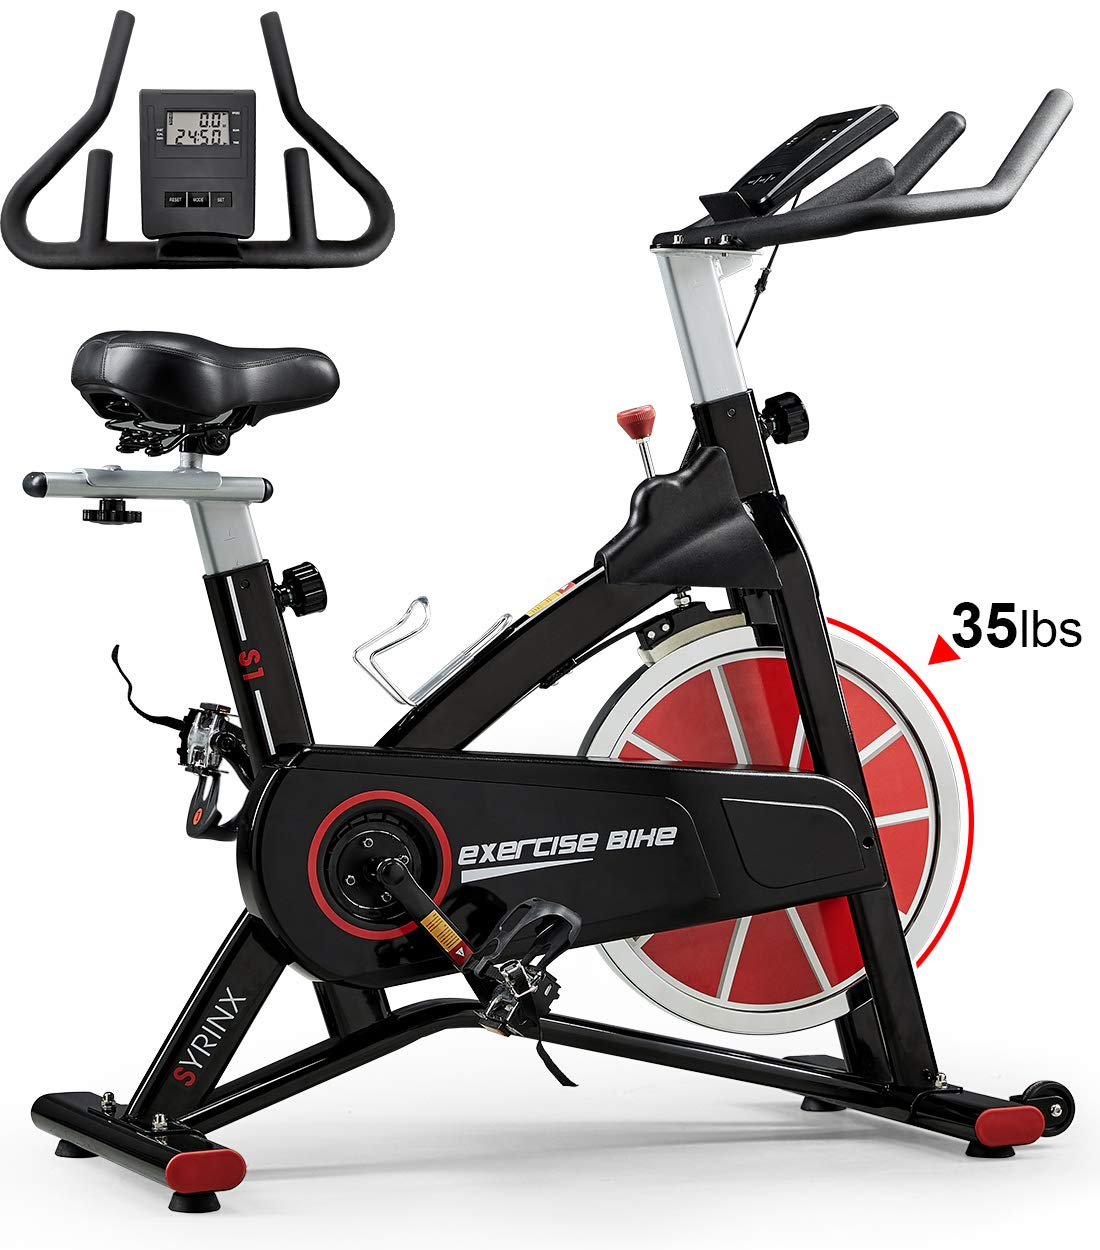 SYRINX Indoor Cycling Bike-Belt Drive Indoor Exercise Bike,Stationary Cycle Bike for Home Cardio Gym Workout Black